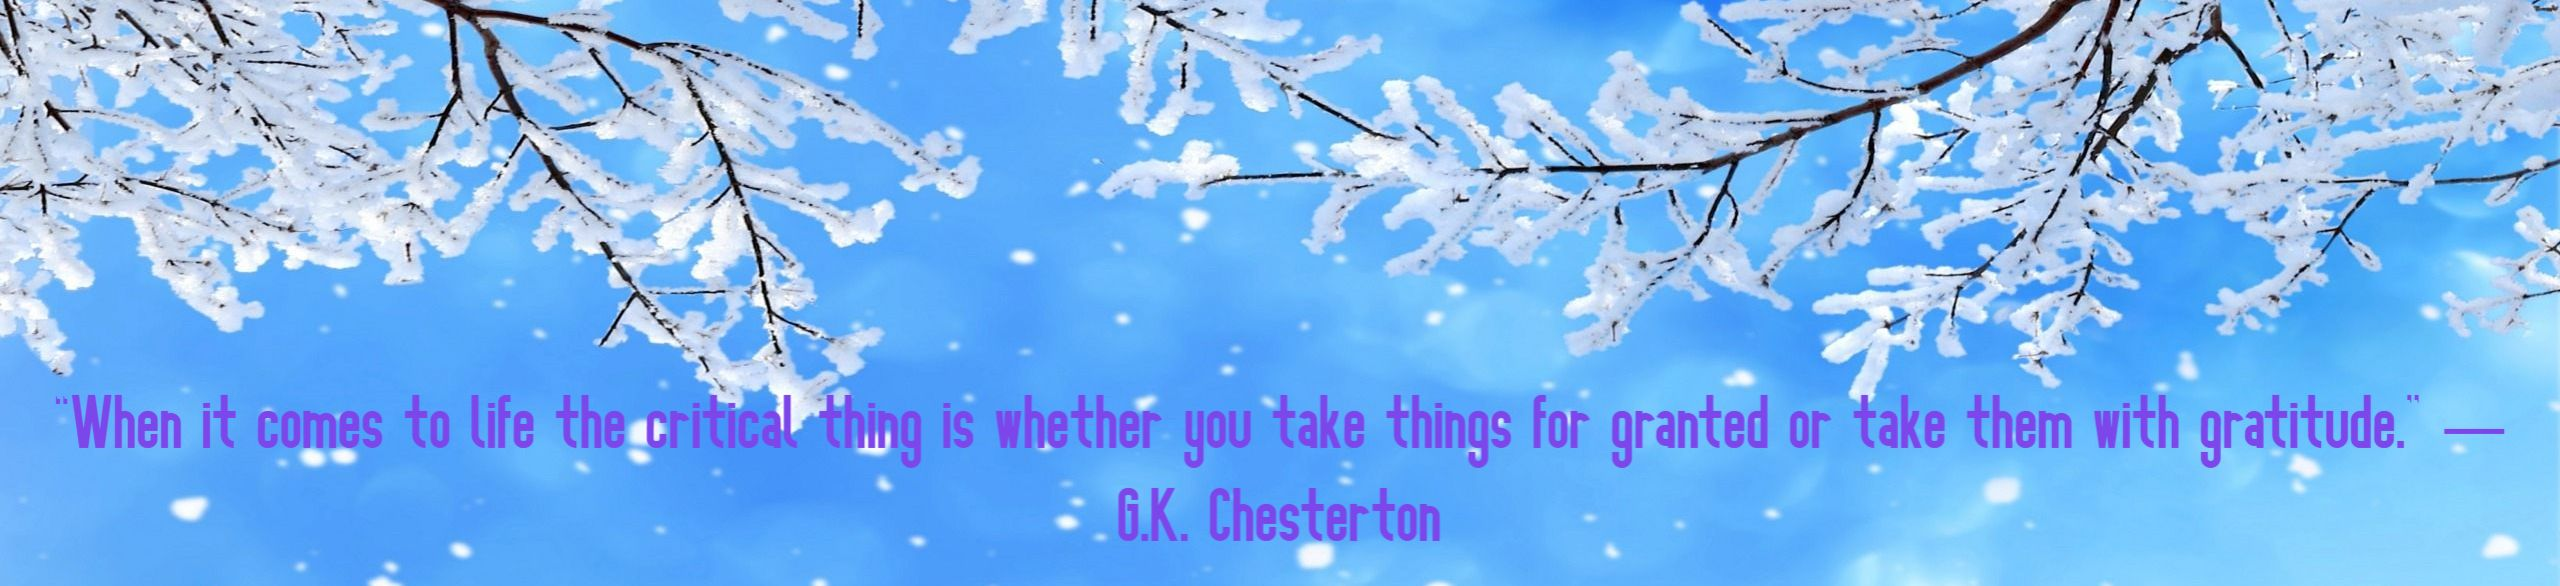 """When it comes to life the critical thing is whether you take things for granted or take them with gratitude."" ― G.K. Chesterton"